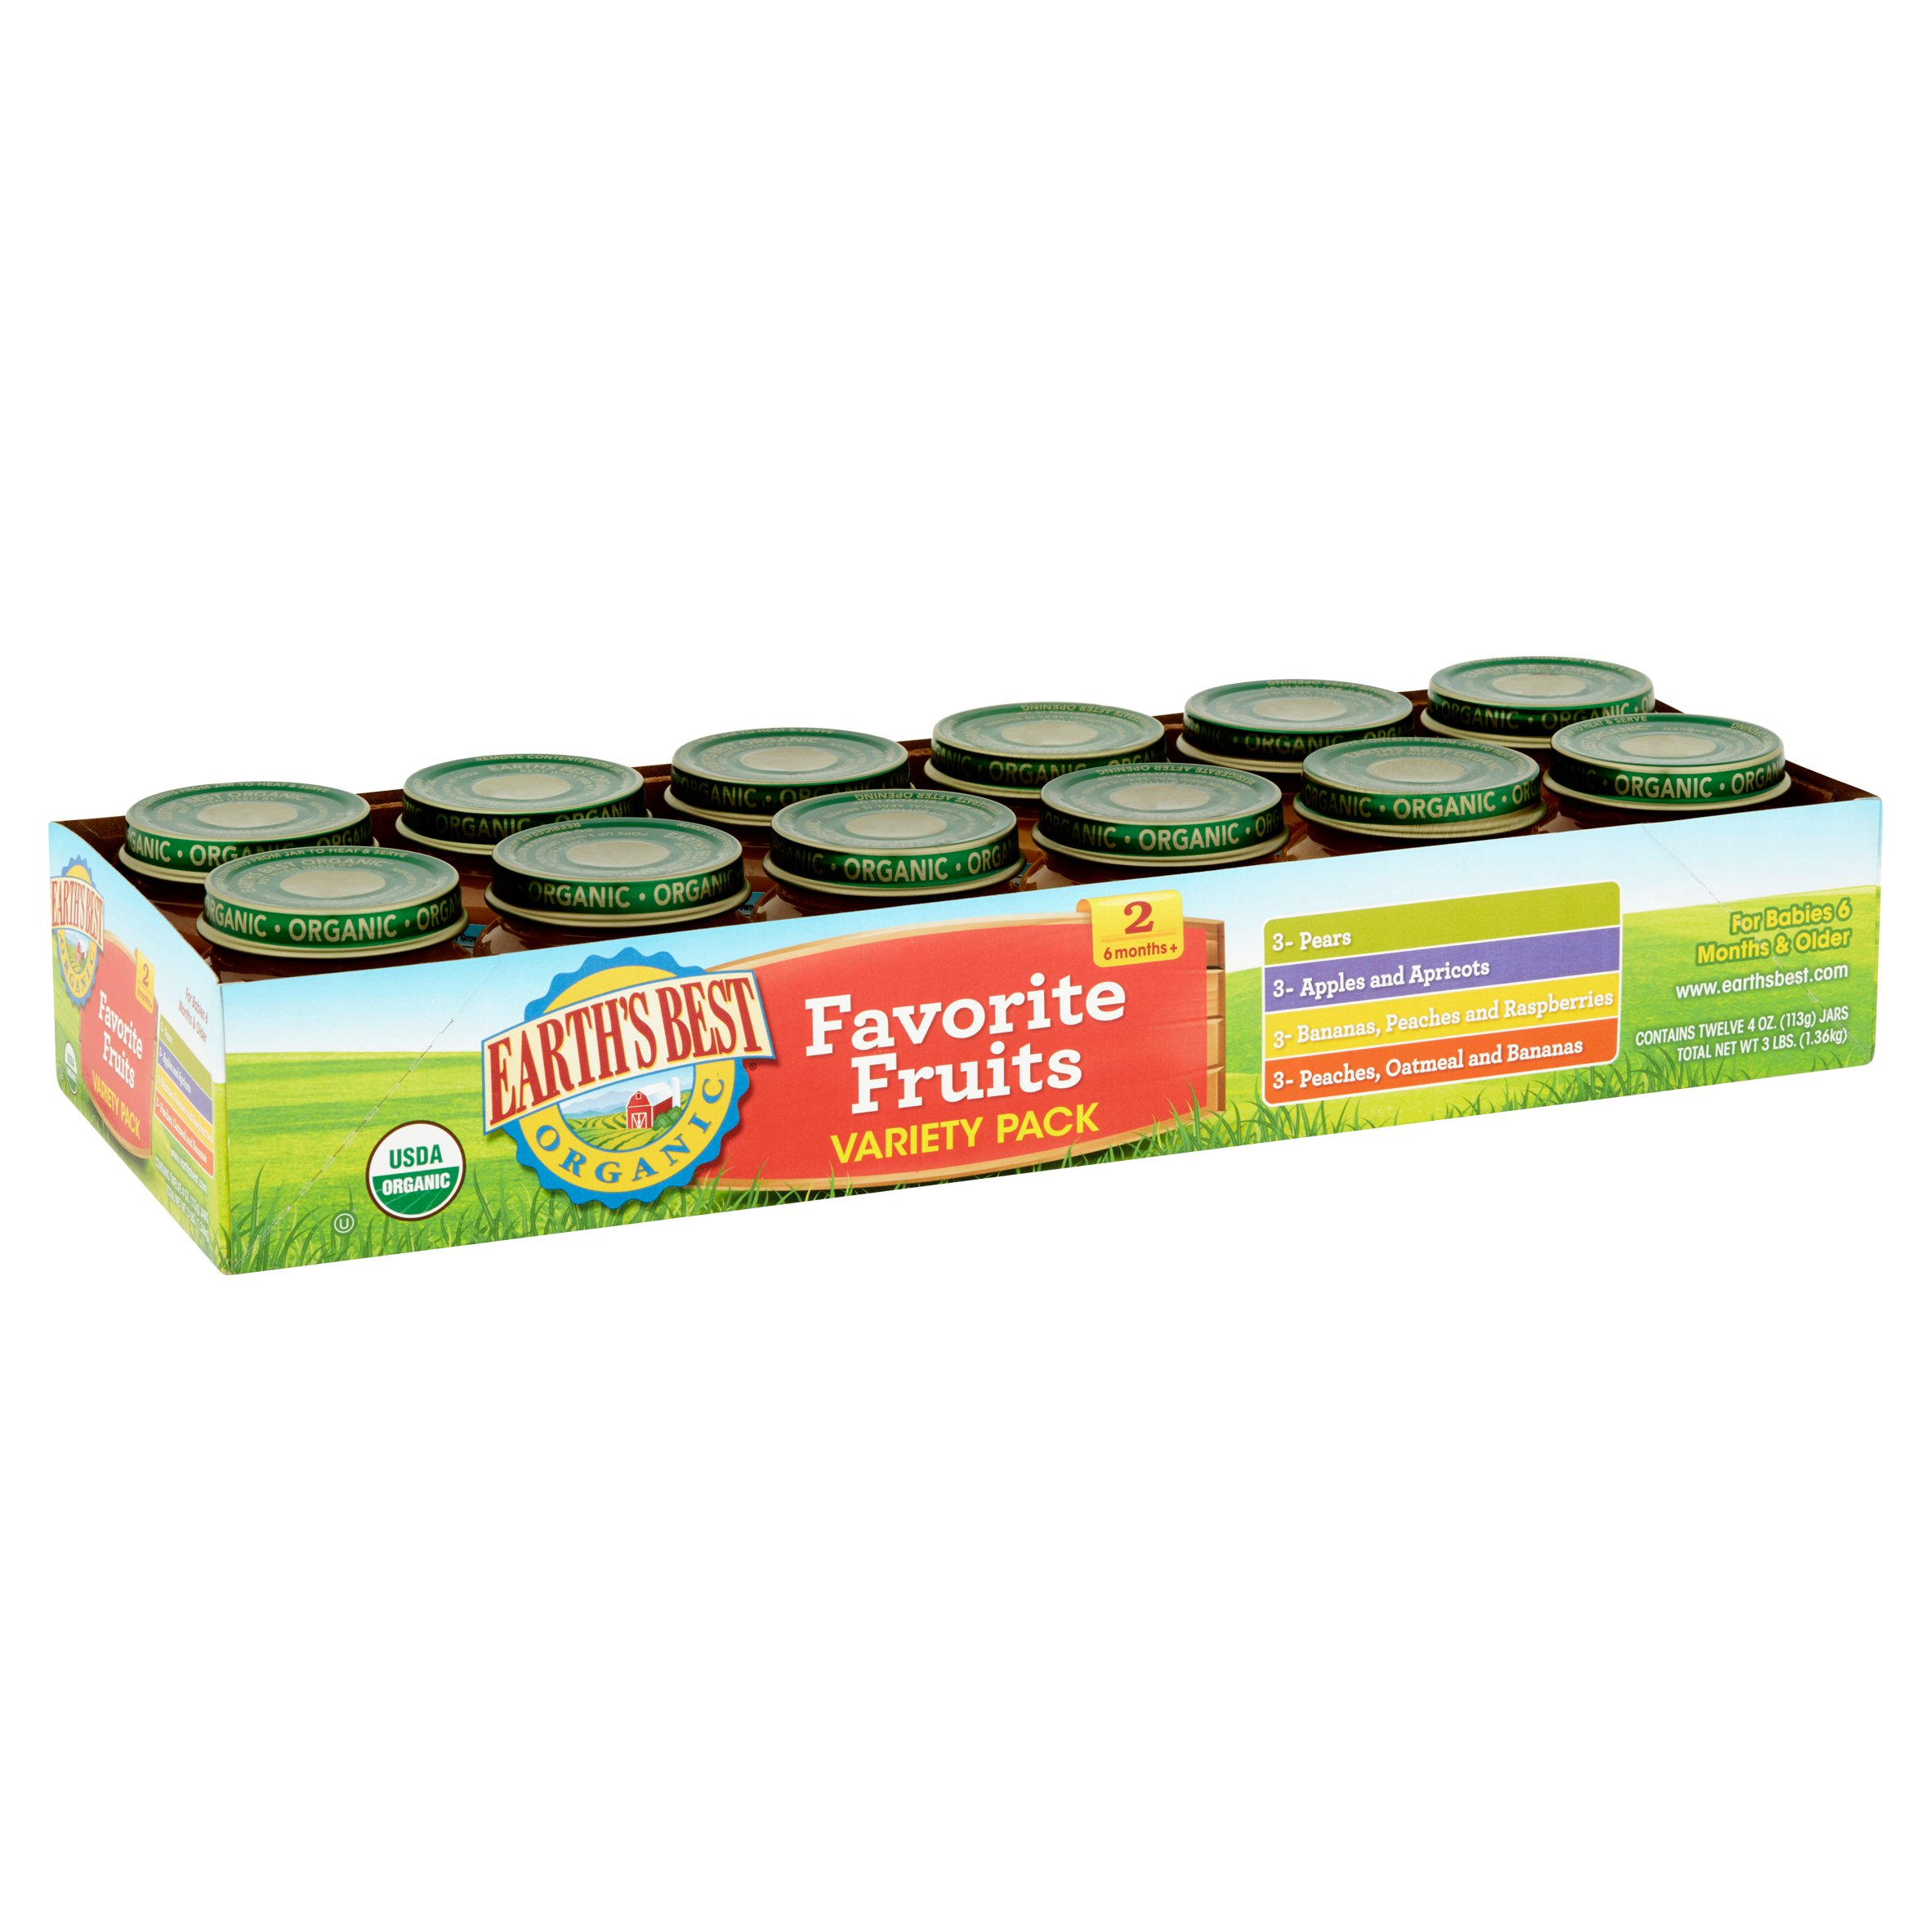 Earth's Best Organic Favorite Fruits Variety Pack, Stage 2, Baby Food, 4 oz, 12 pack